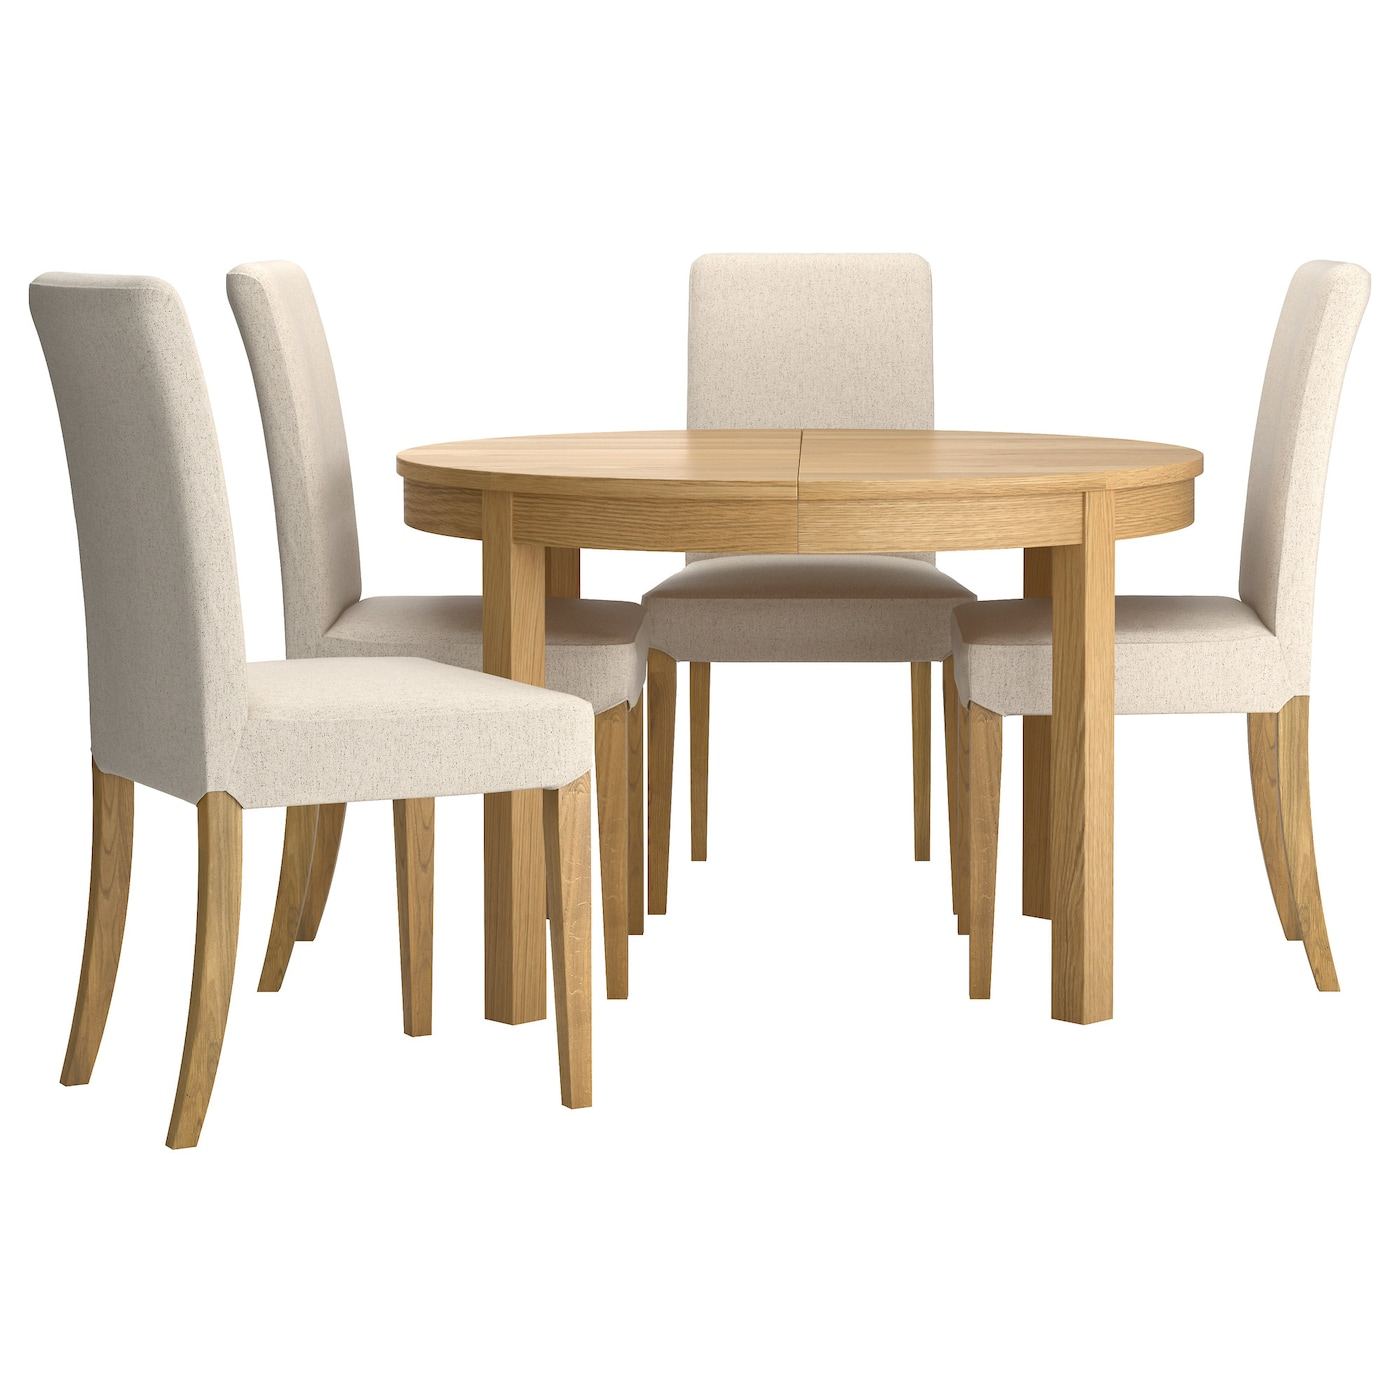 Henriksdal bjursta table and 4 chairs oak veneer linneryd for Ikea dining table and chairs set